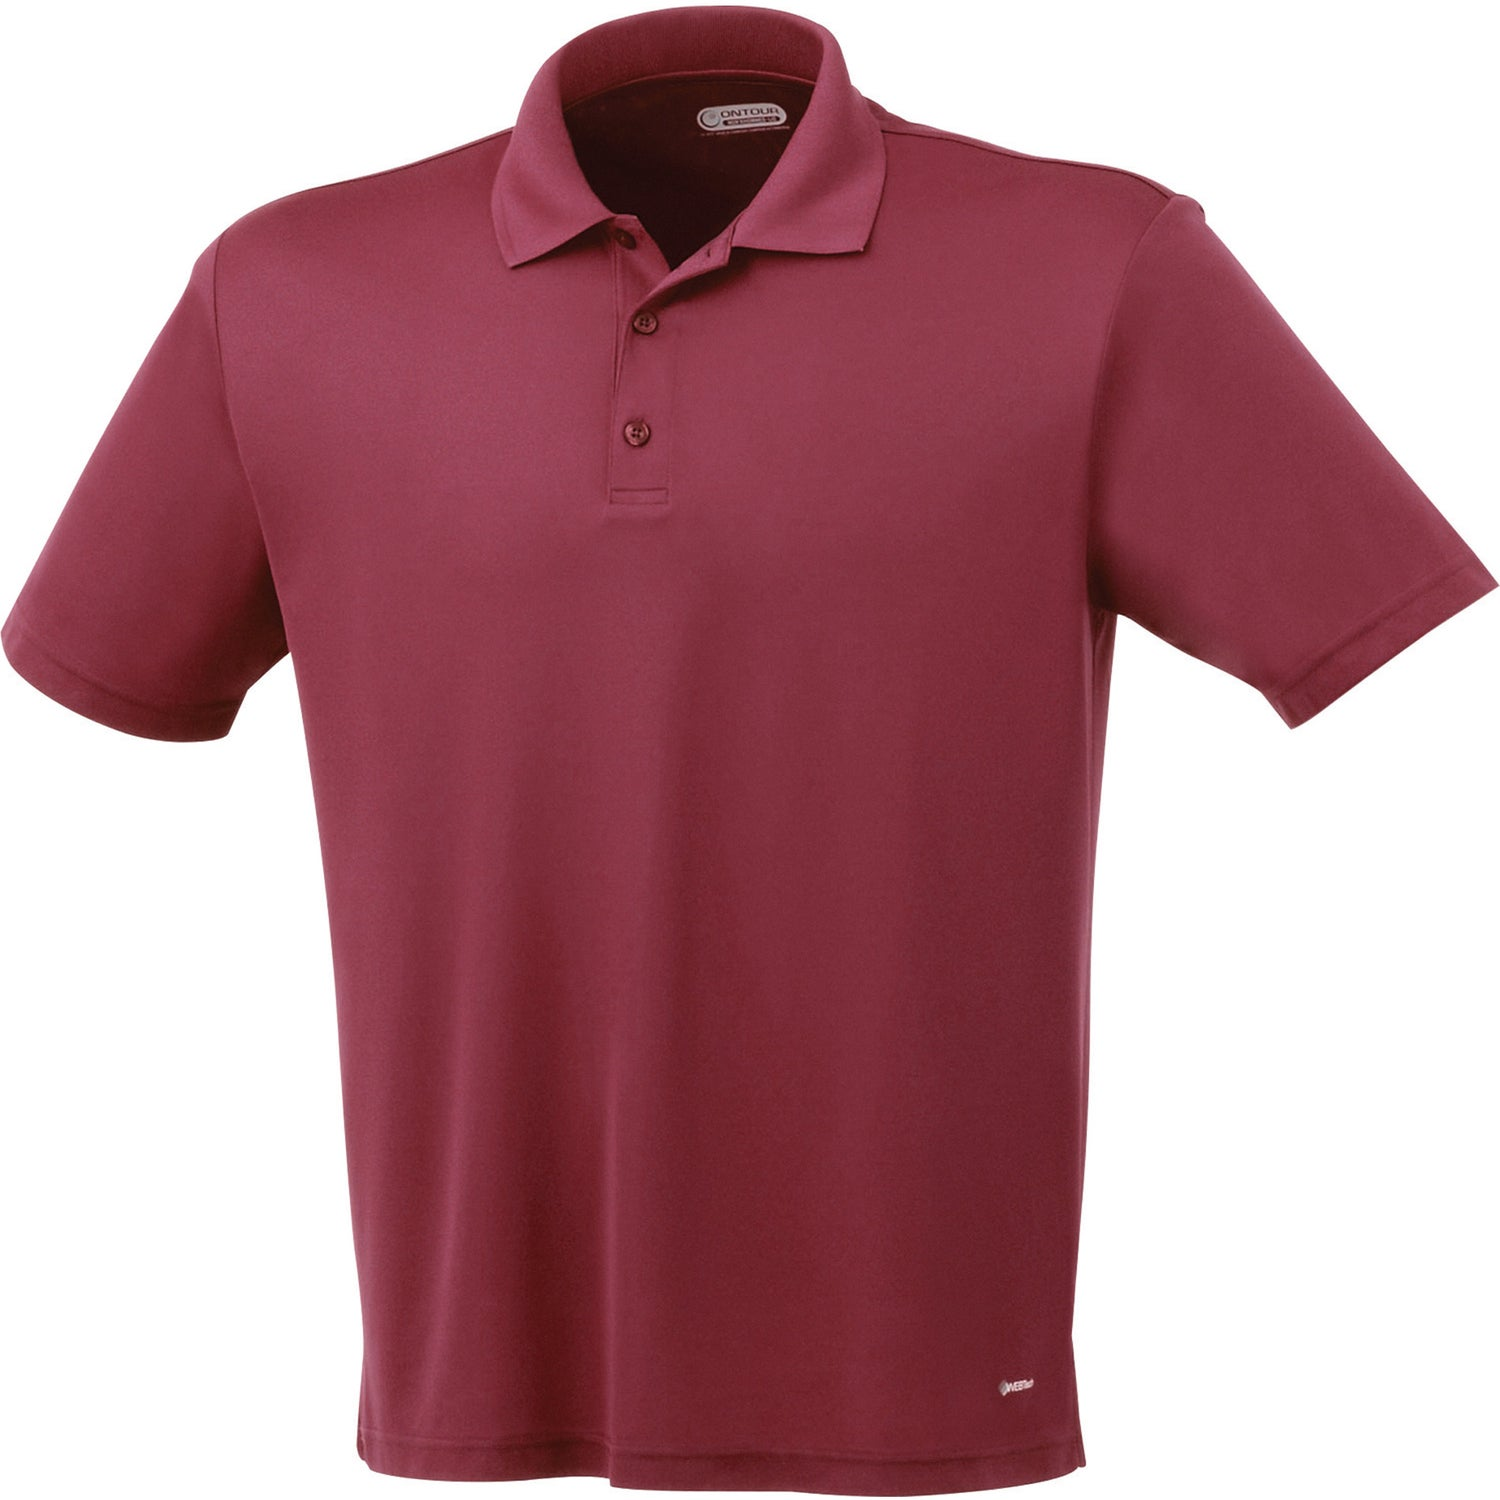 Moreno short sleeve polo shirt by trimark men 39 s for Quality polo shirts with company logo